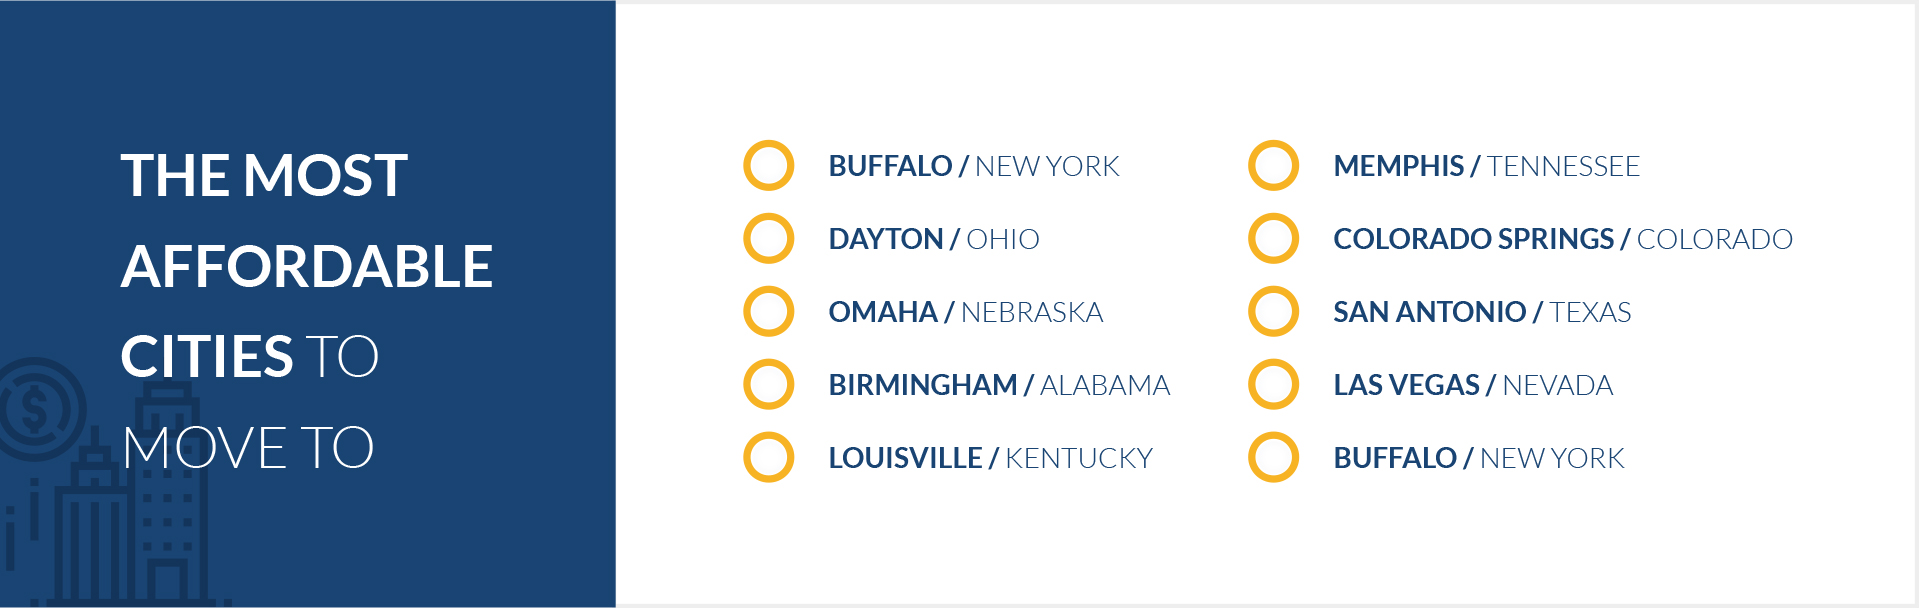 Top 10 most affordable cities to move to